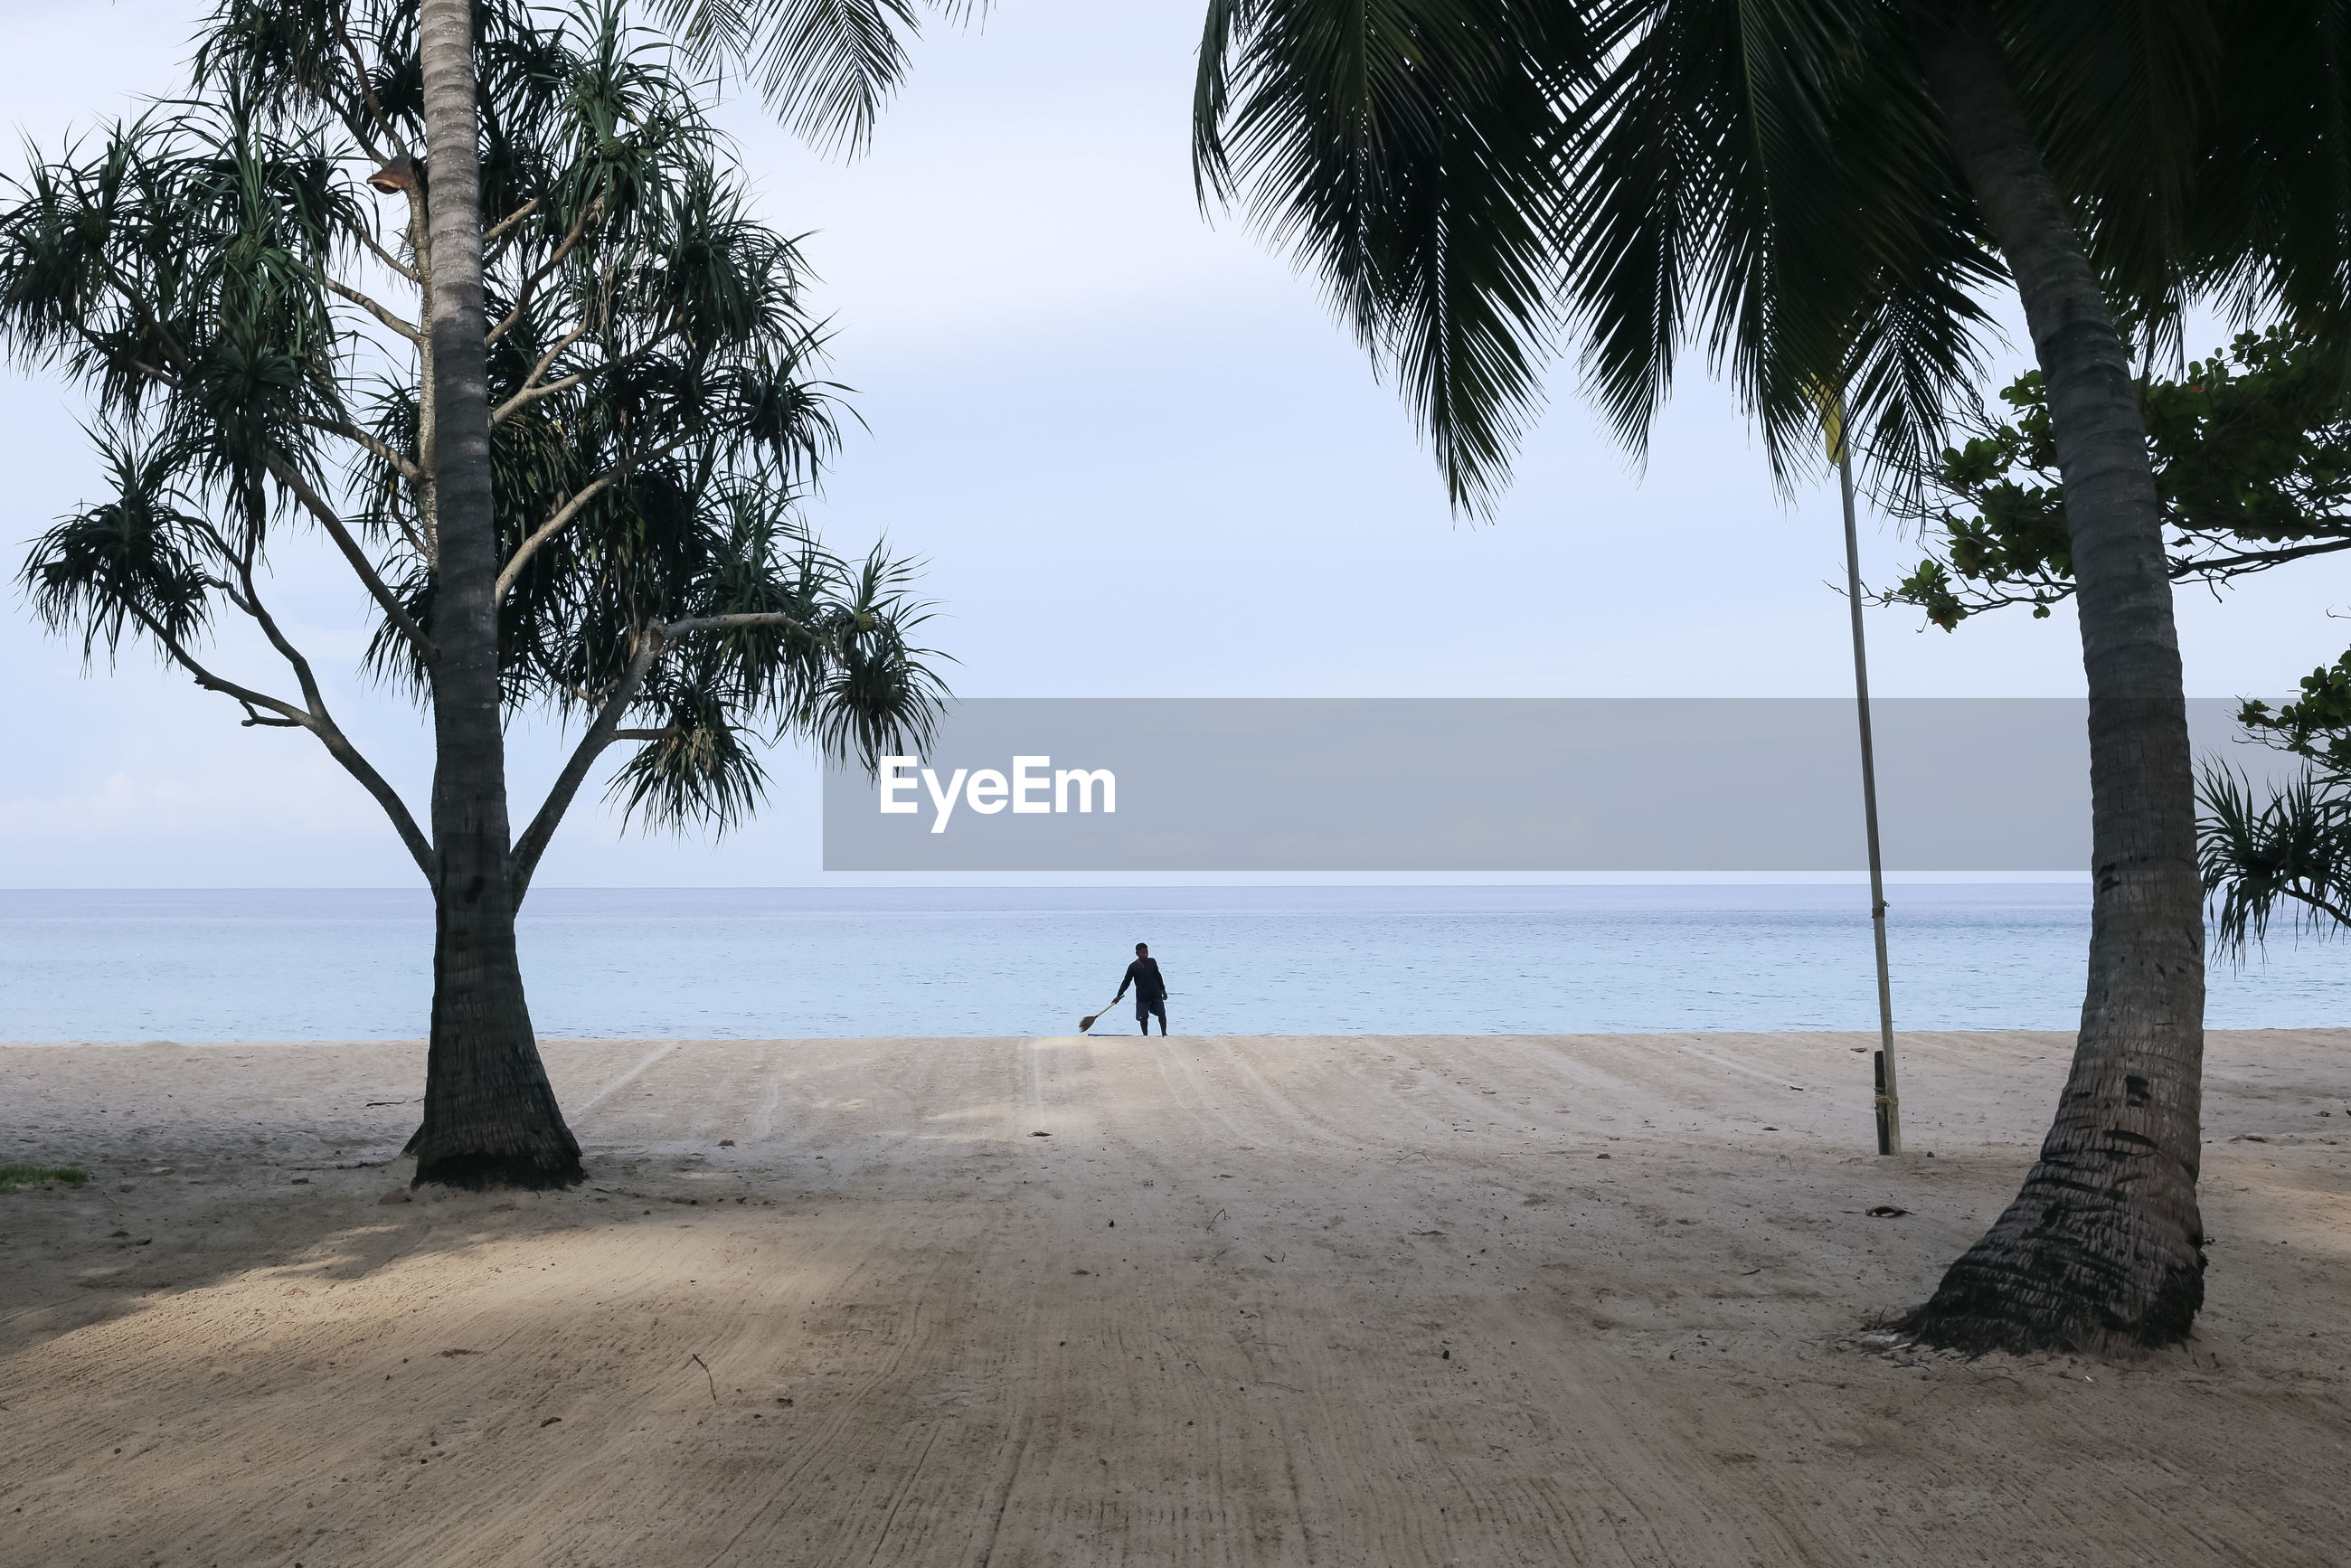 tree, sea, beach, water, horizon over water, full length, real people, palm tree, beauty in nature, nature, scenics, one person, sand, growth, sky, standing, tree trunk, lifestyles, day, outdoors, men, branch, people